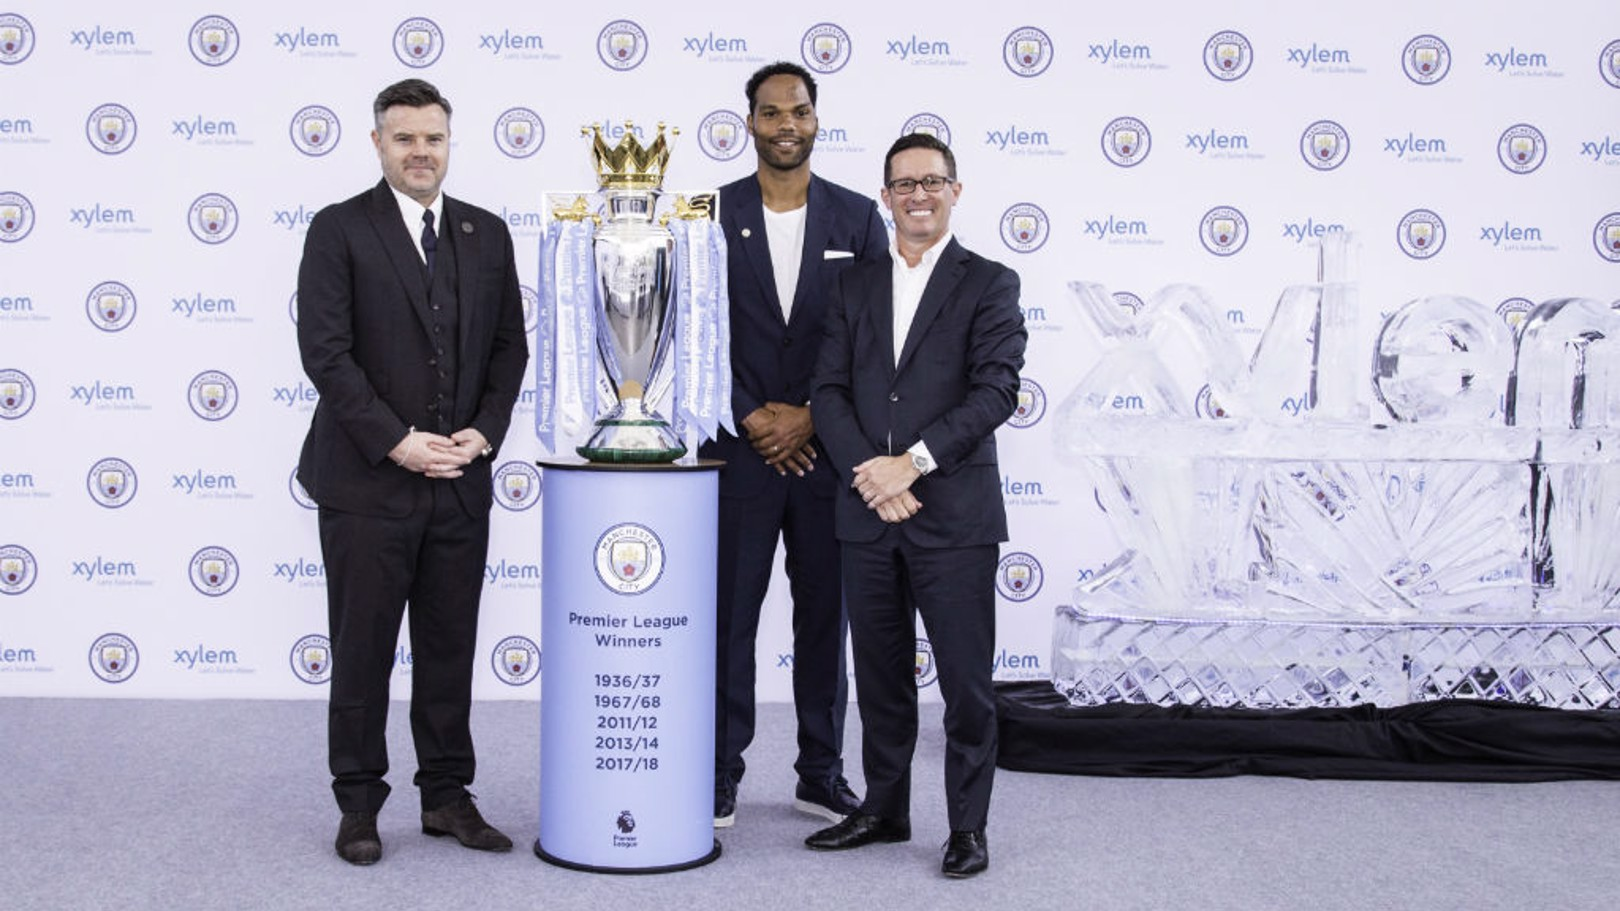 Xylem has become the Club's official Water Technology Partner